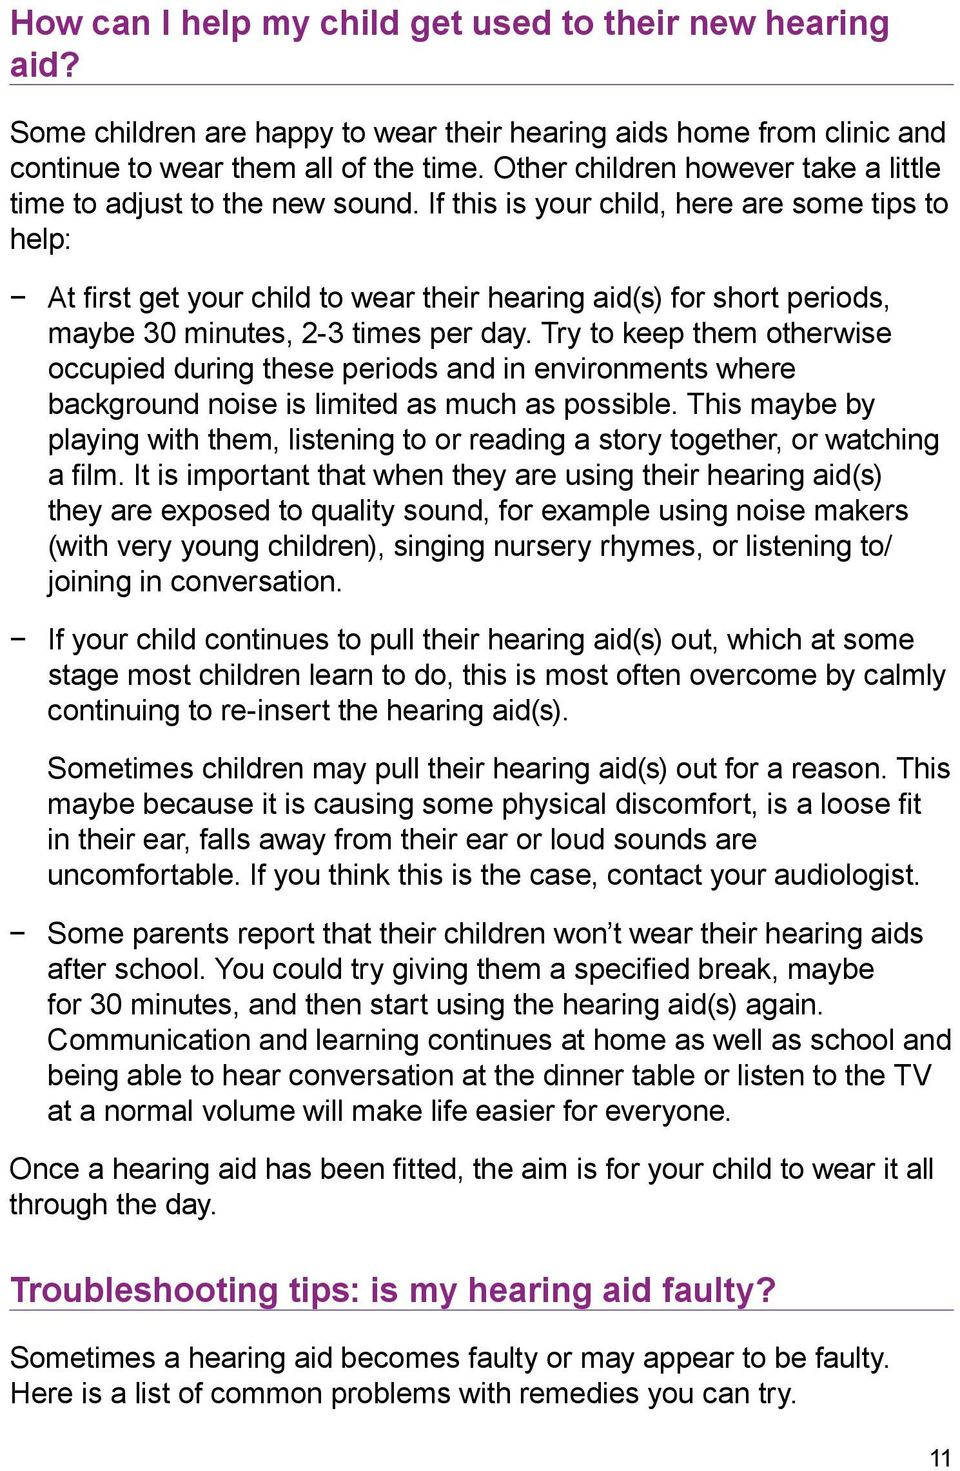 If this is your child, here are some tips to help: At first get your child to wear their hearing aid(s) for short periods, maybe 30 minutes, 2-3 times per day.